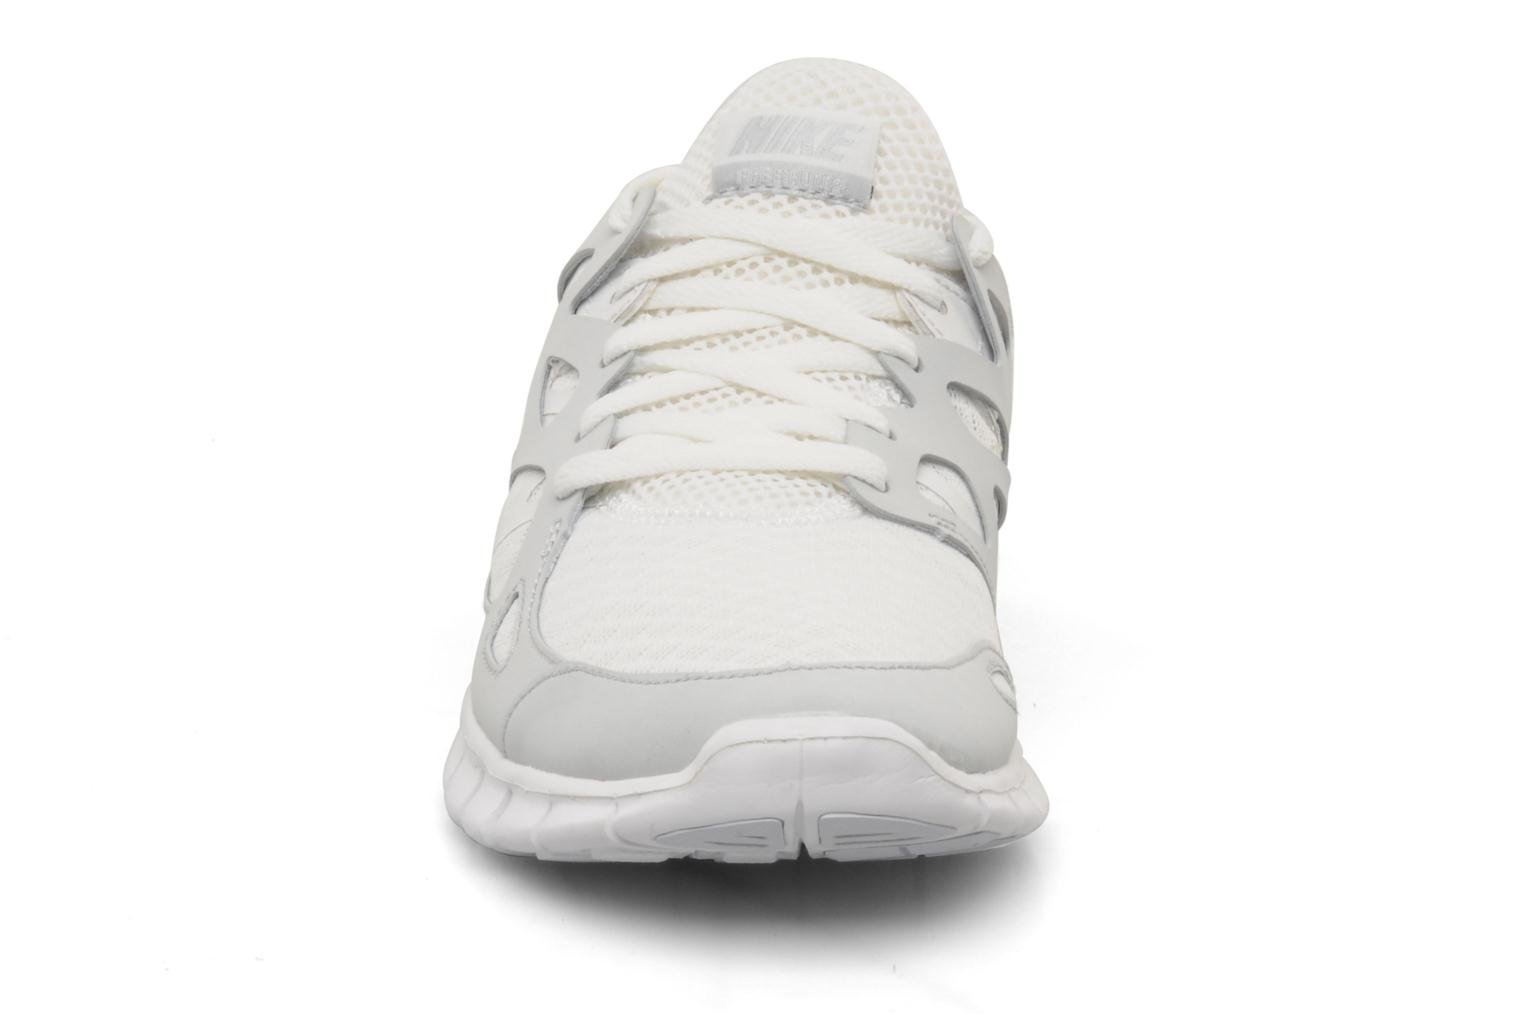 Wmns nike free run+ 2 Summit white/white-pr platinum